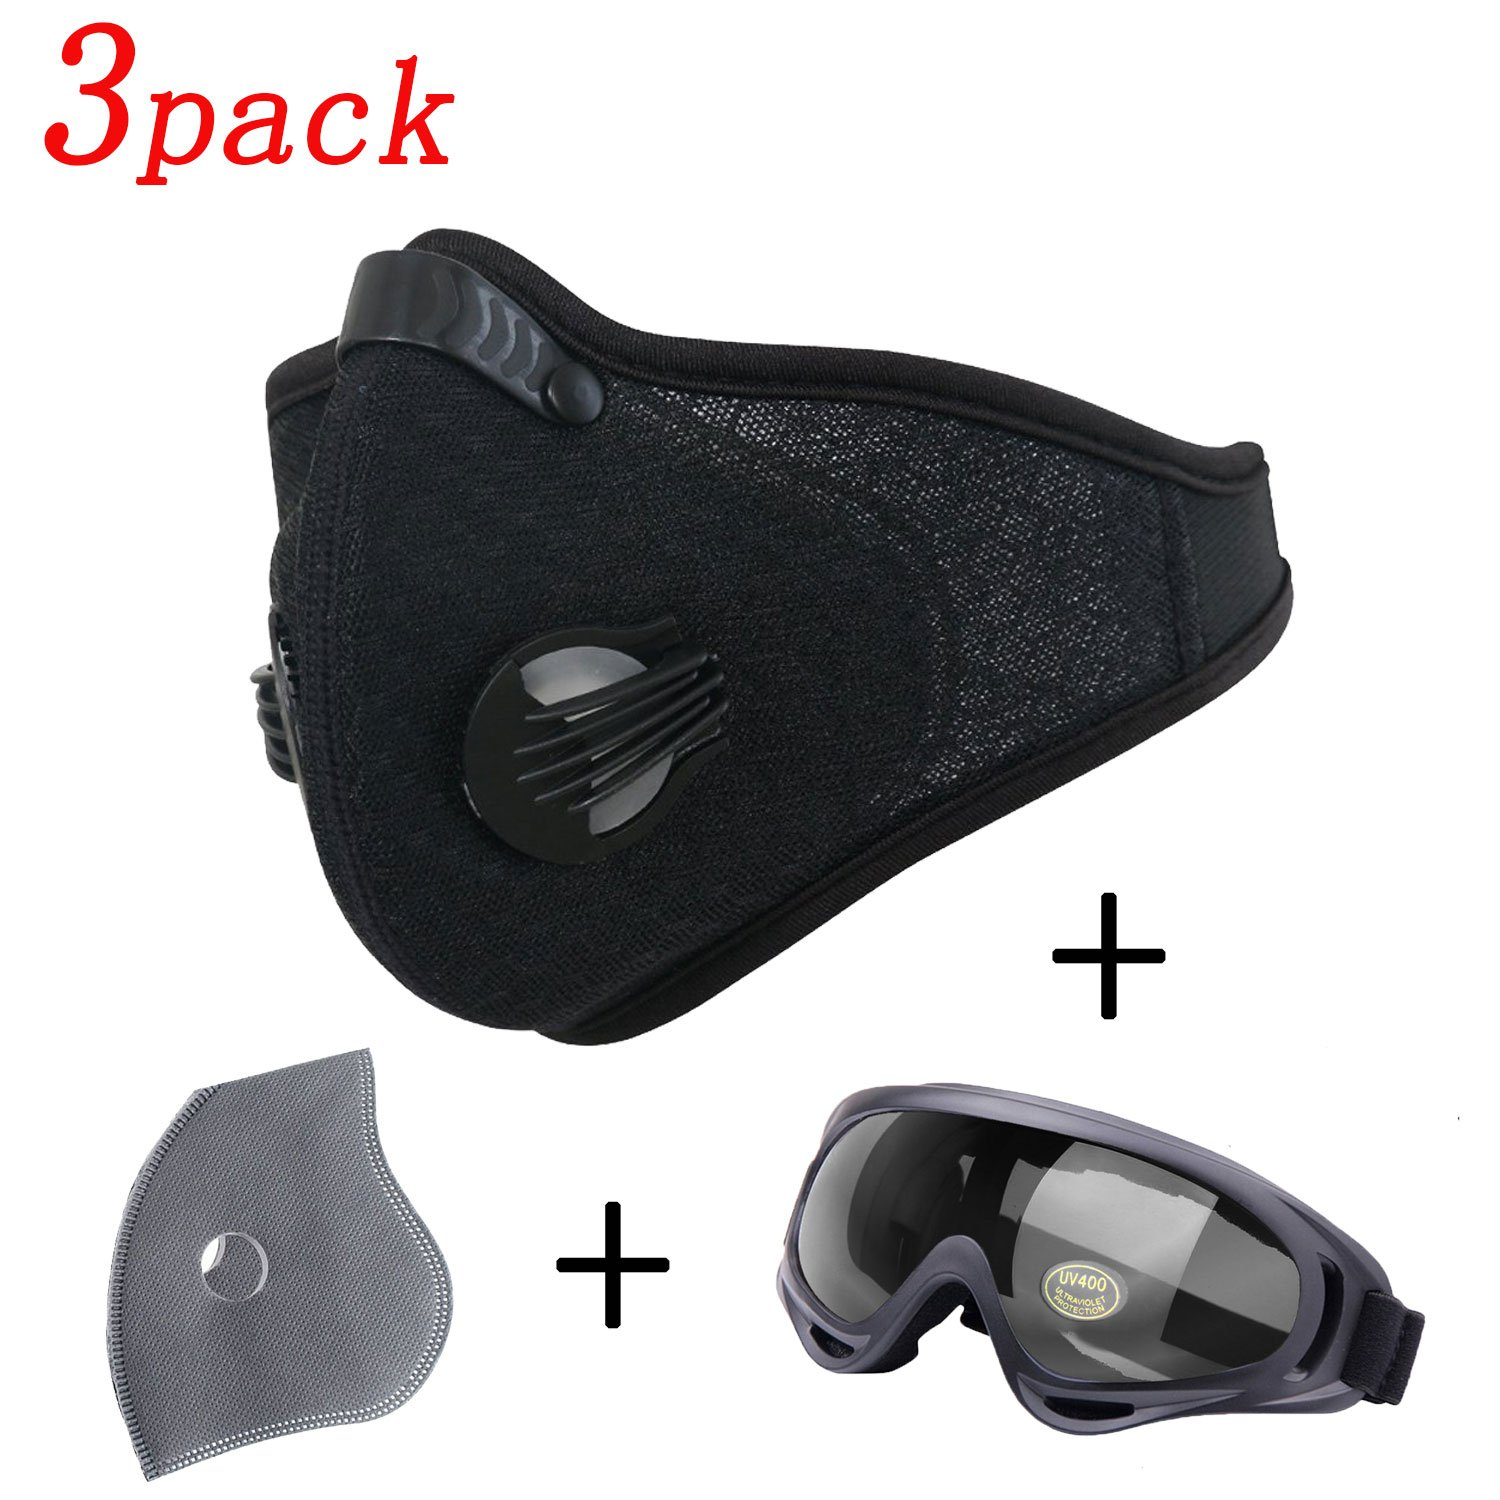 Activated Carbon Dustproof Mask 3Pack – Include 1 Pack Safety Glasses 1 Pack Filter, Filtration Exhaust Gas Anti Pollen Allergy PM2.5 Dust Mask Air Filter for Running Cycling DIY Outdoor Activities